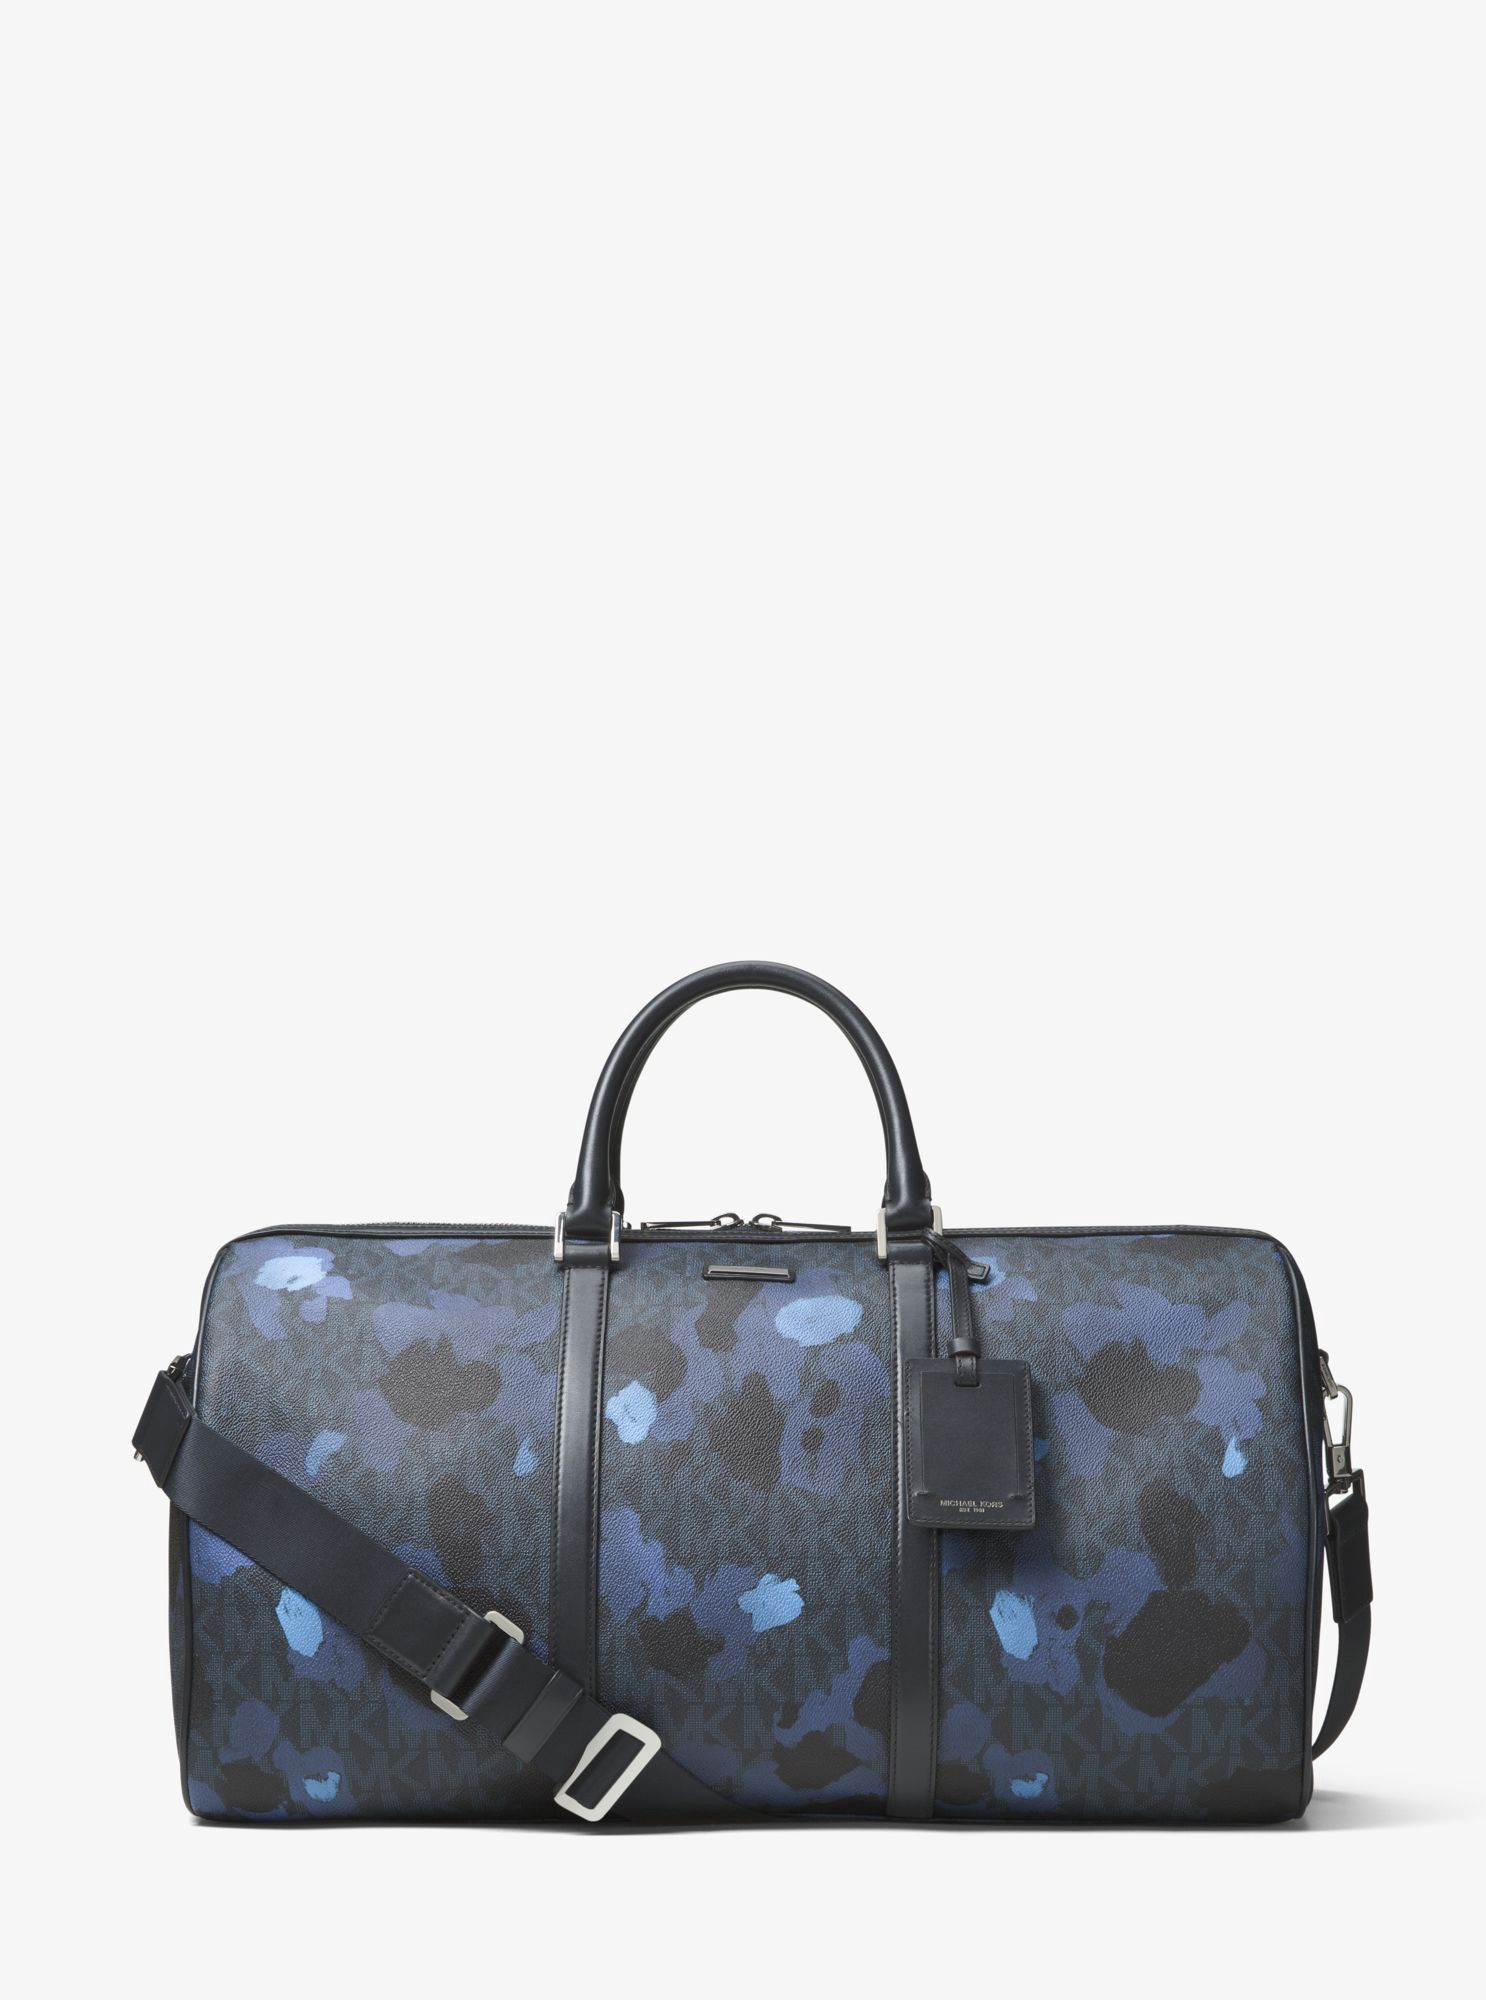 98cd83986bb2 MICHAEL KORS Jet Set Painterly Camo Large Duffel Bag.  michaelkors  bags   canvas  lining  travel bags  polyester  weekend  cotton